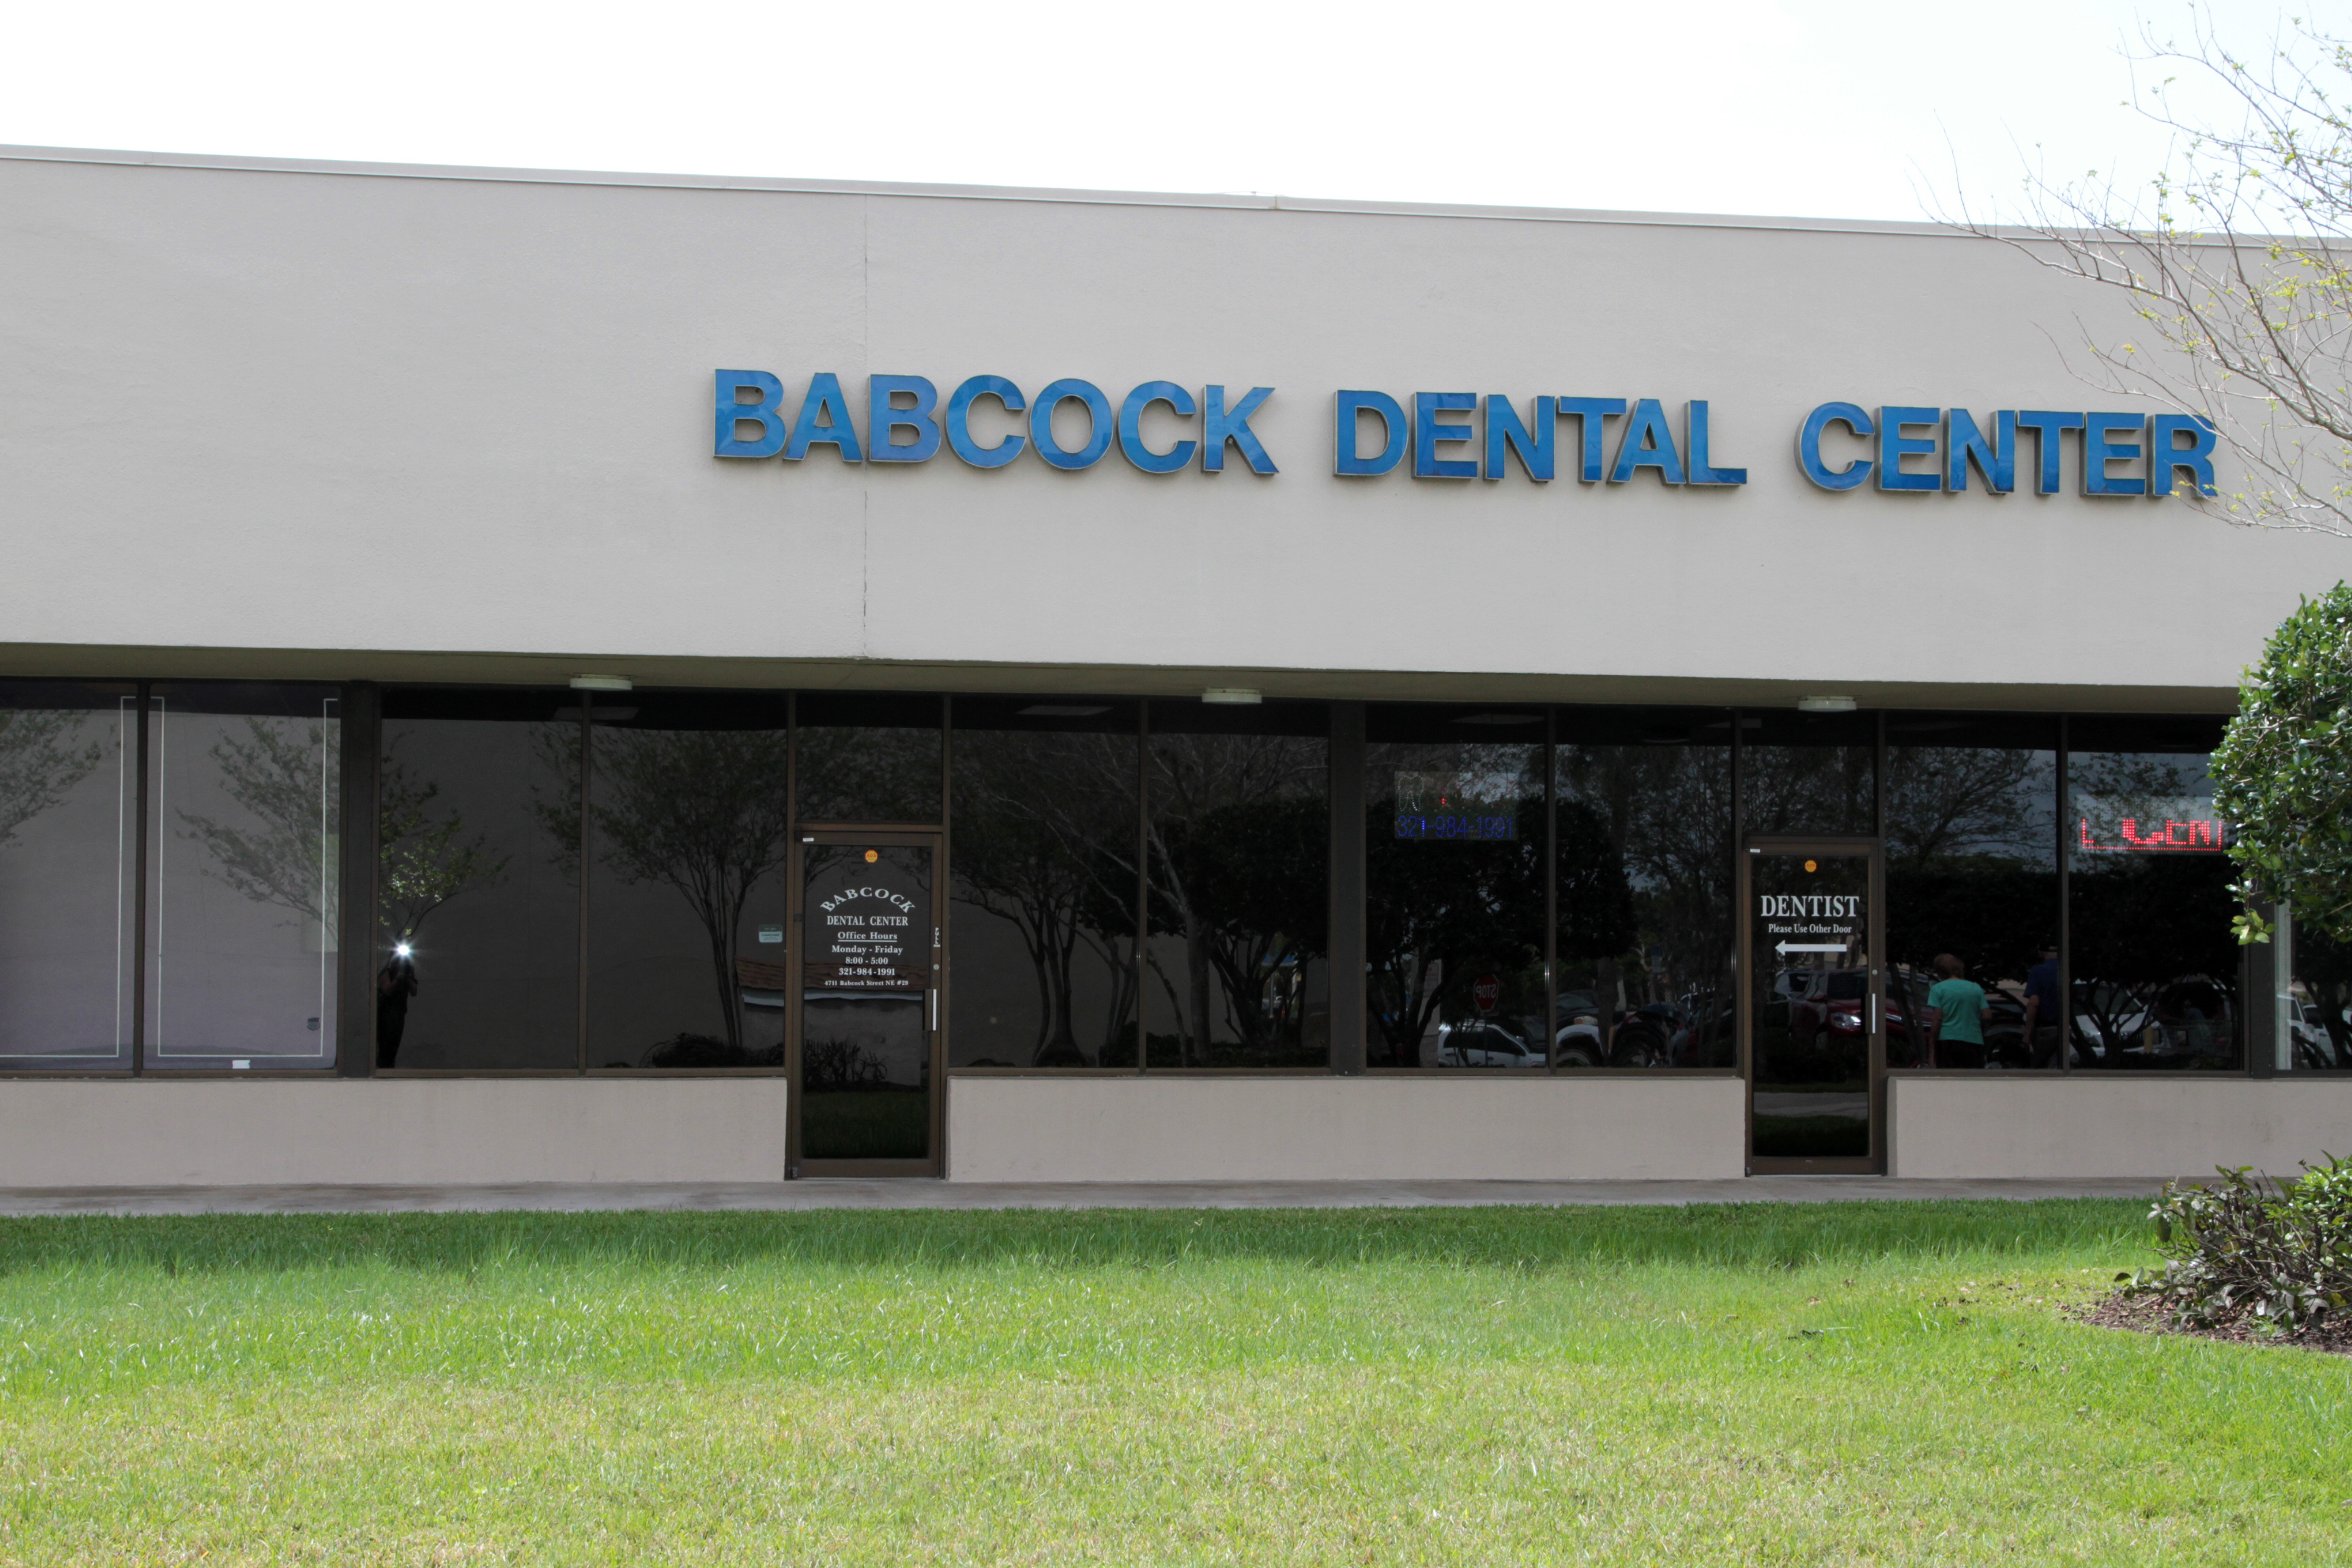 Babcock Dental Center image 5